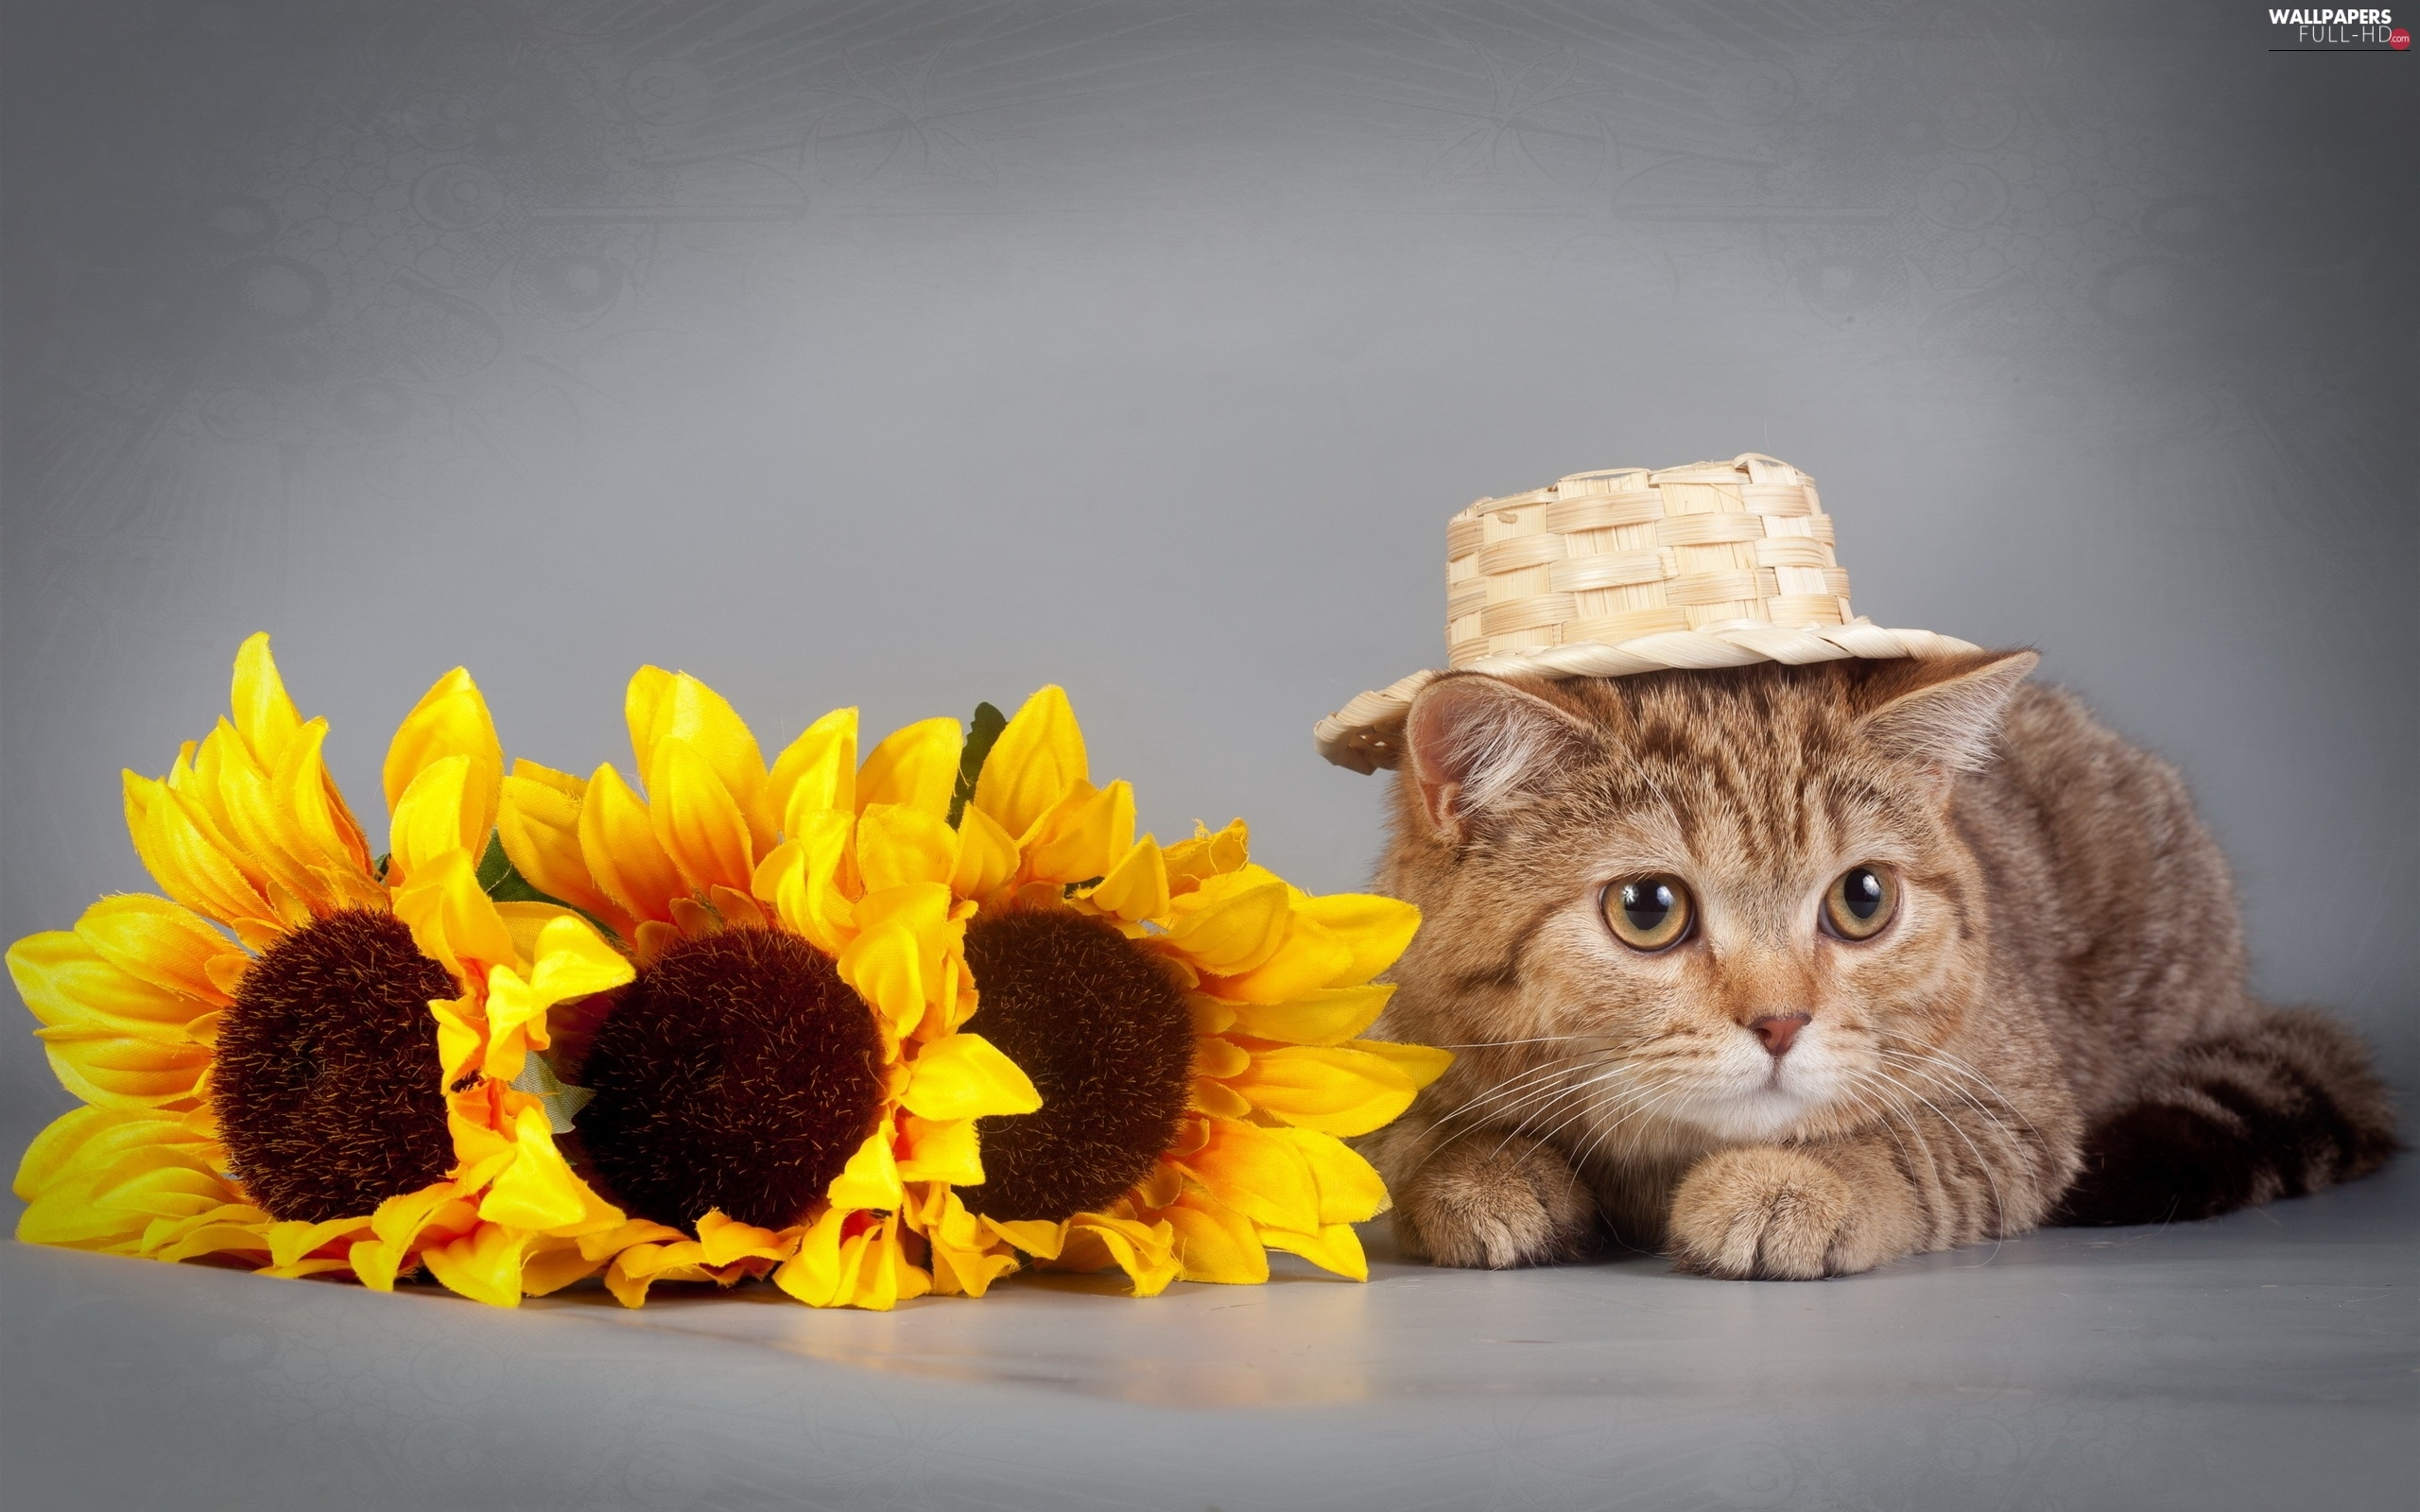 Hat, Nice sunflowers, kitten